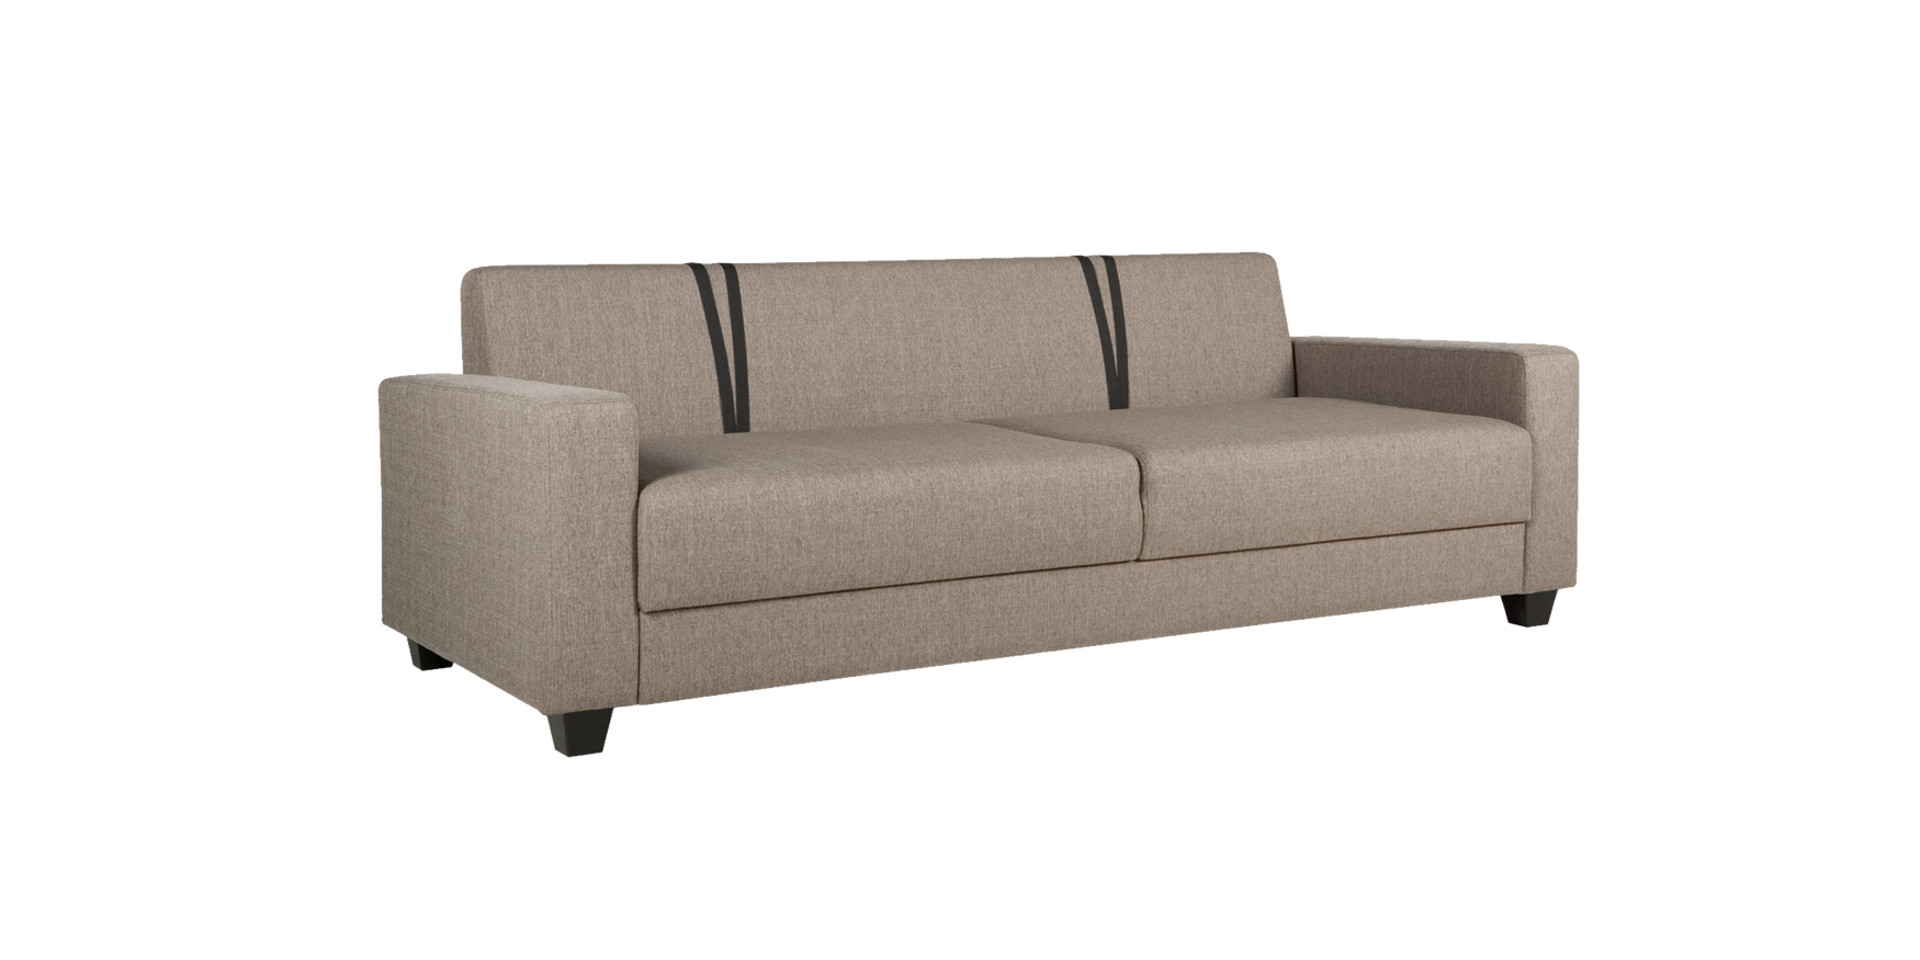 sits-bari-canape-convertible-sofa_bed_cedros3_light_brown_3